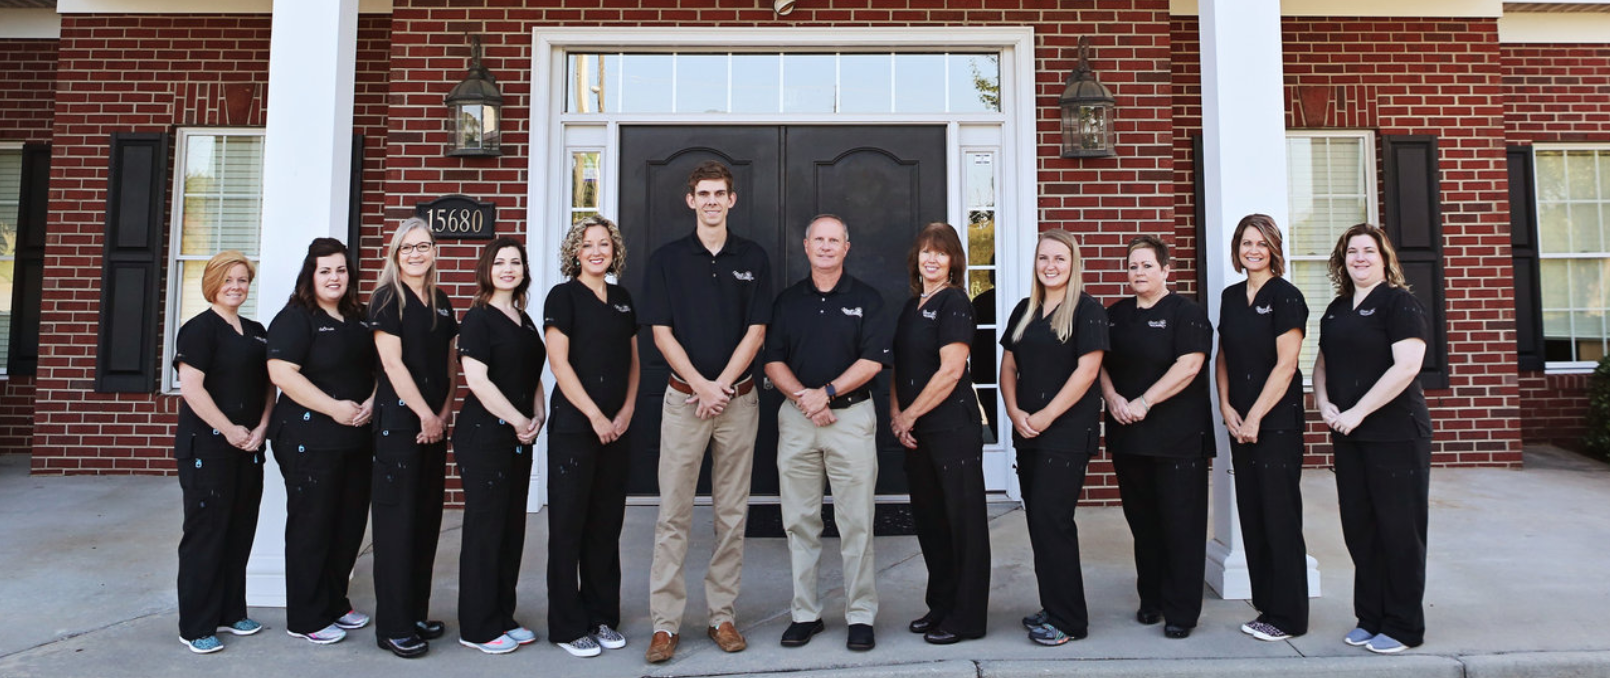 Our Seneca Dental Team Is Here For You